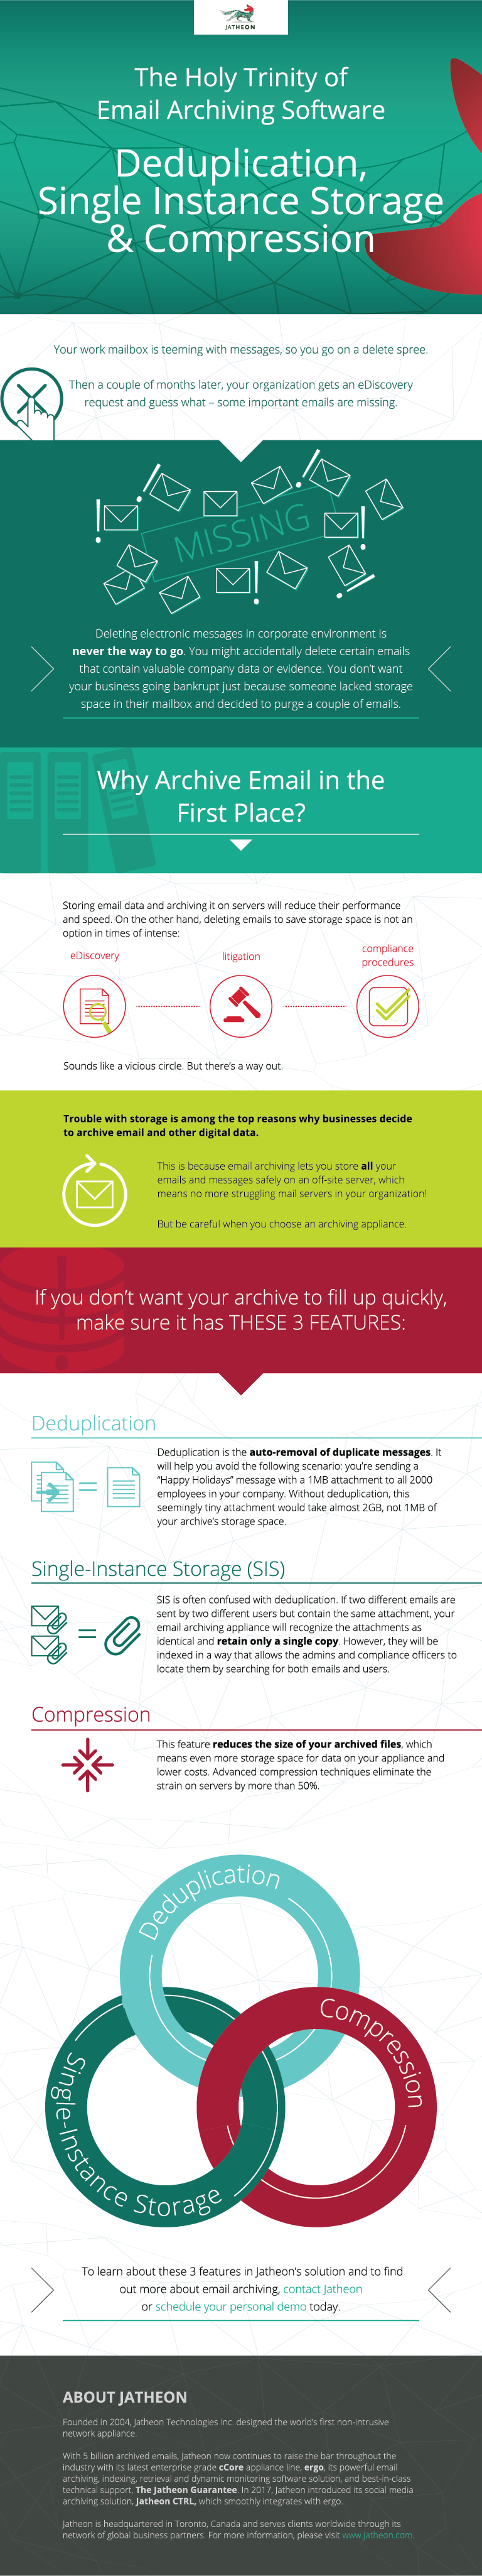 email archiving software features